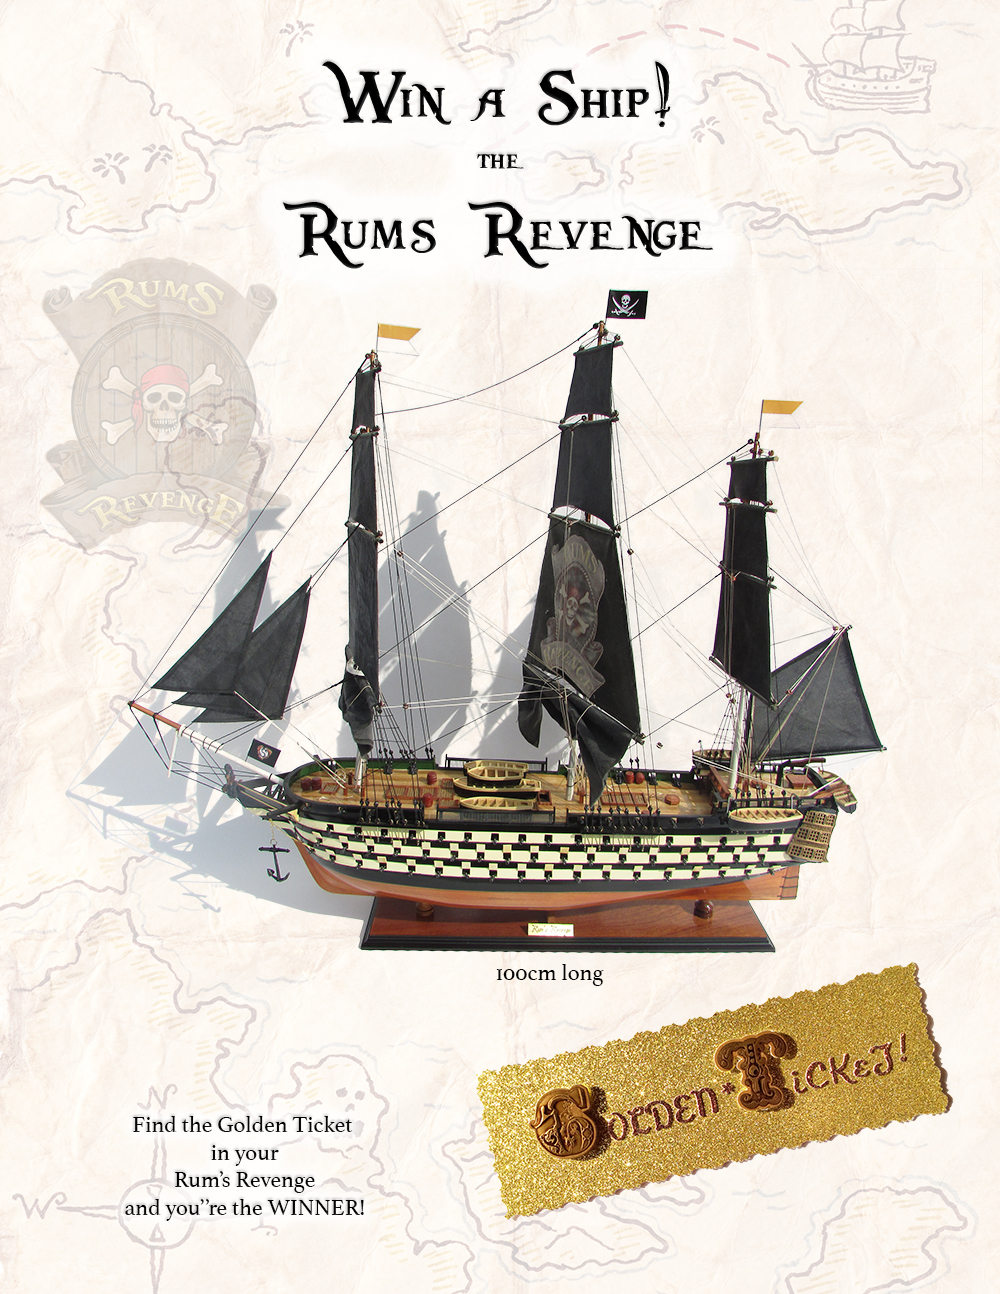 Golden-ticket-rumsrevenge